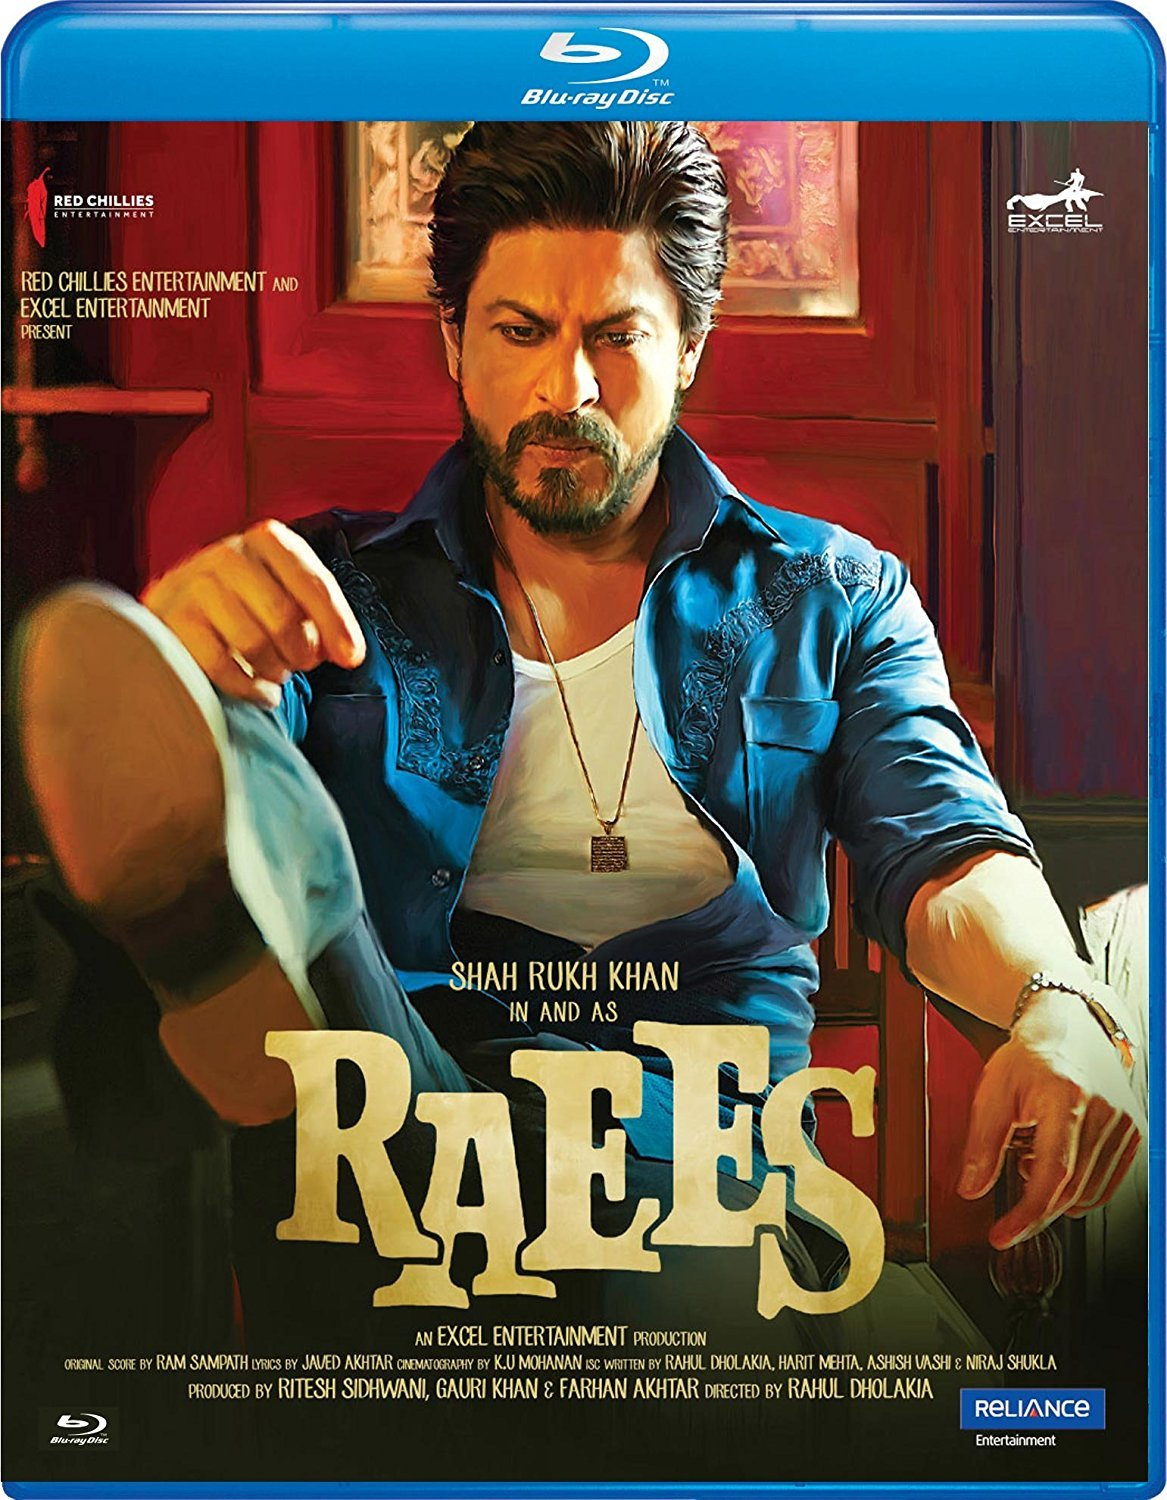 raees bluray 1080p download